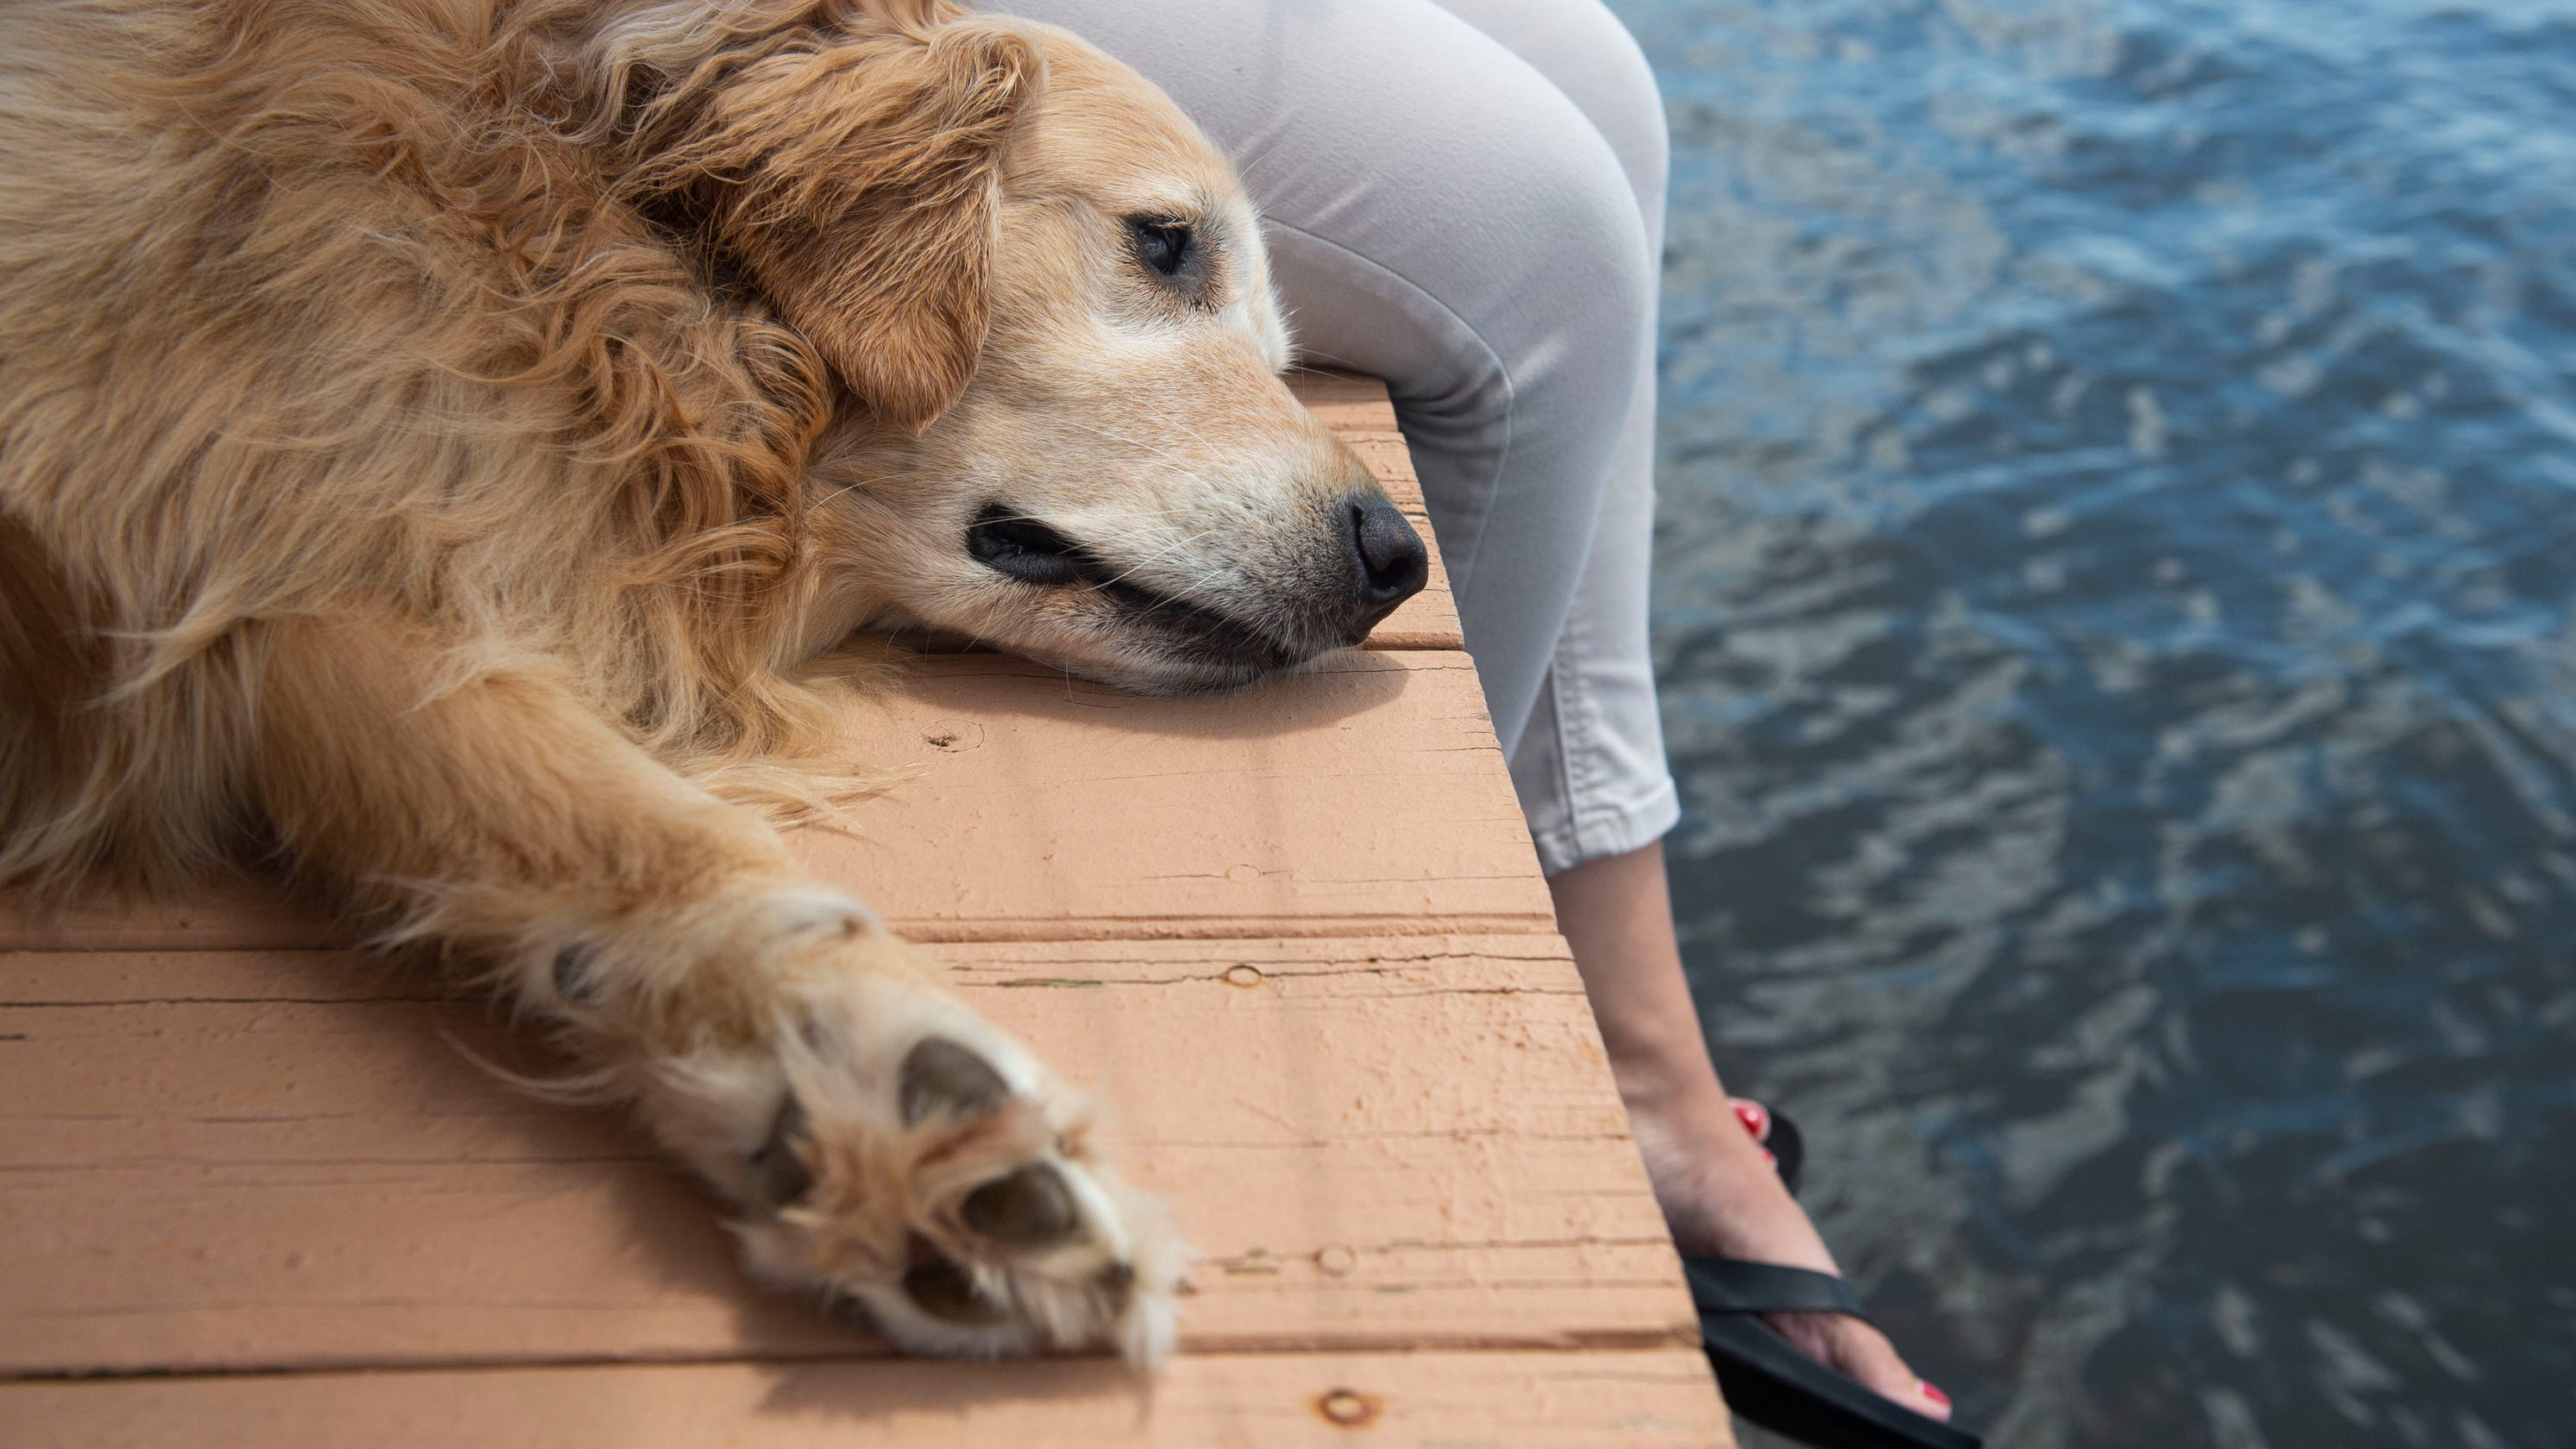 Water hazards for dogs: 7 things that could harm your pet